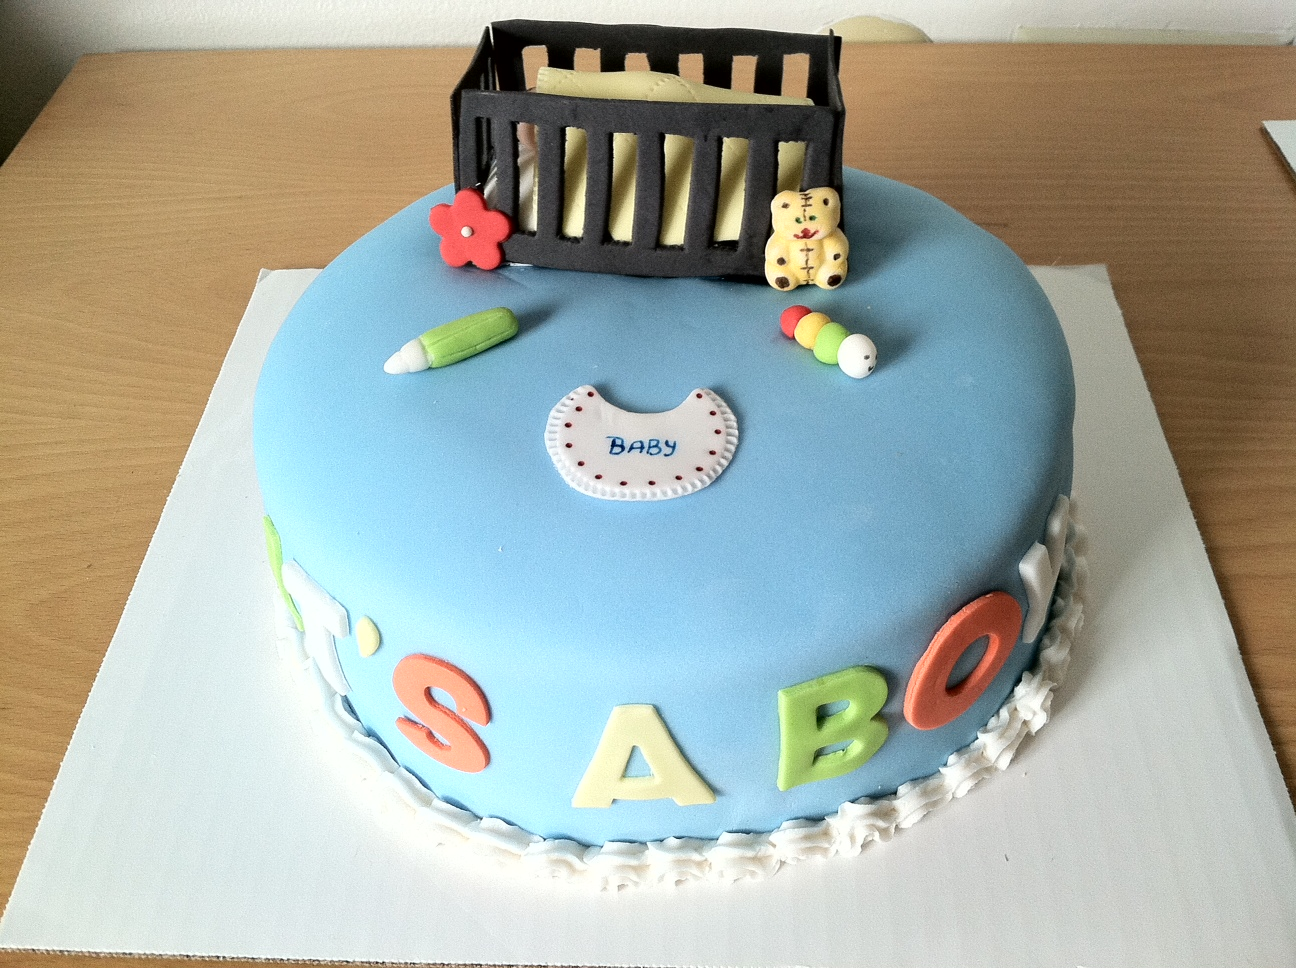 Cake Decorating Ideas Baby Shower : Baby Shower Cakes: Baby Boy Shower Cake Decorating Ideas